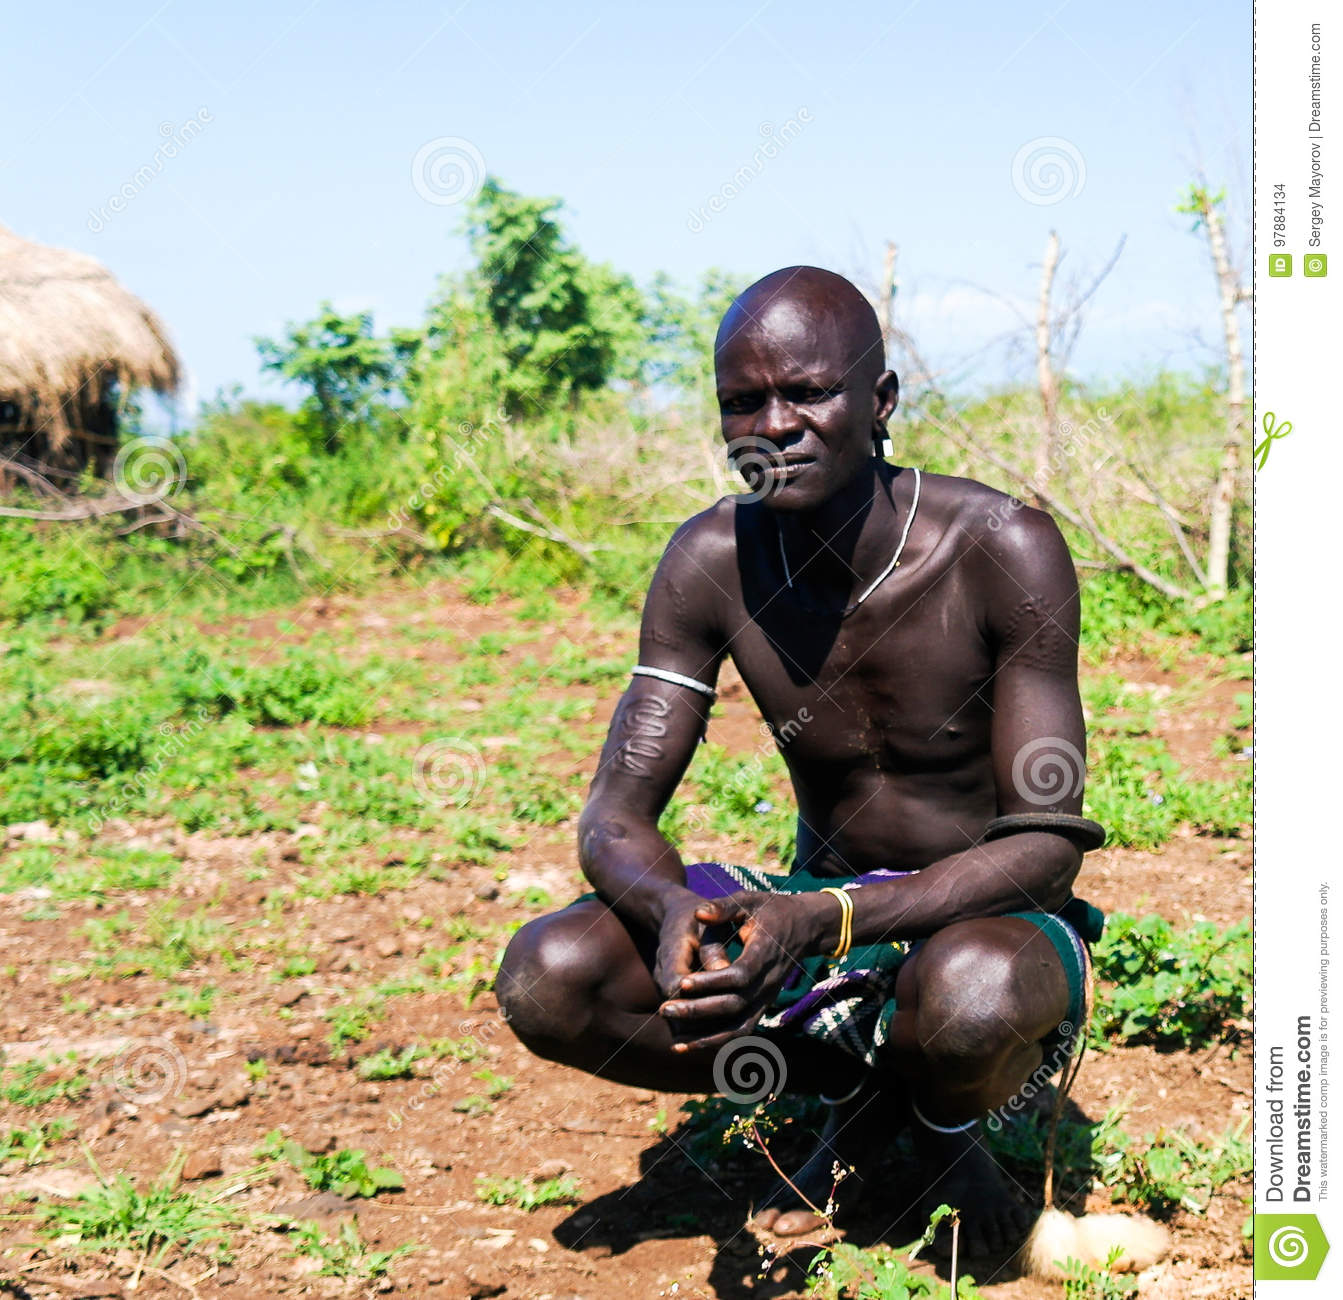 Mursi Tribe Man In National Dress Editorial Stock Image - Image Of Hair, Native 97884134-1562